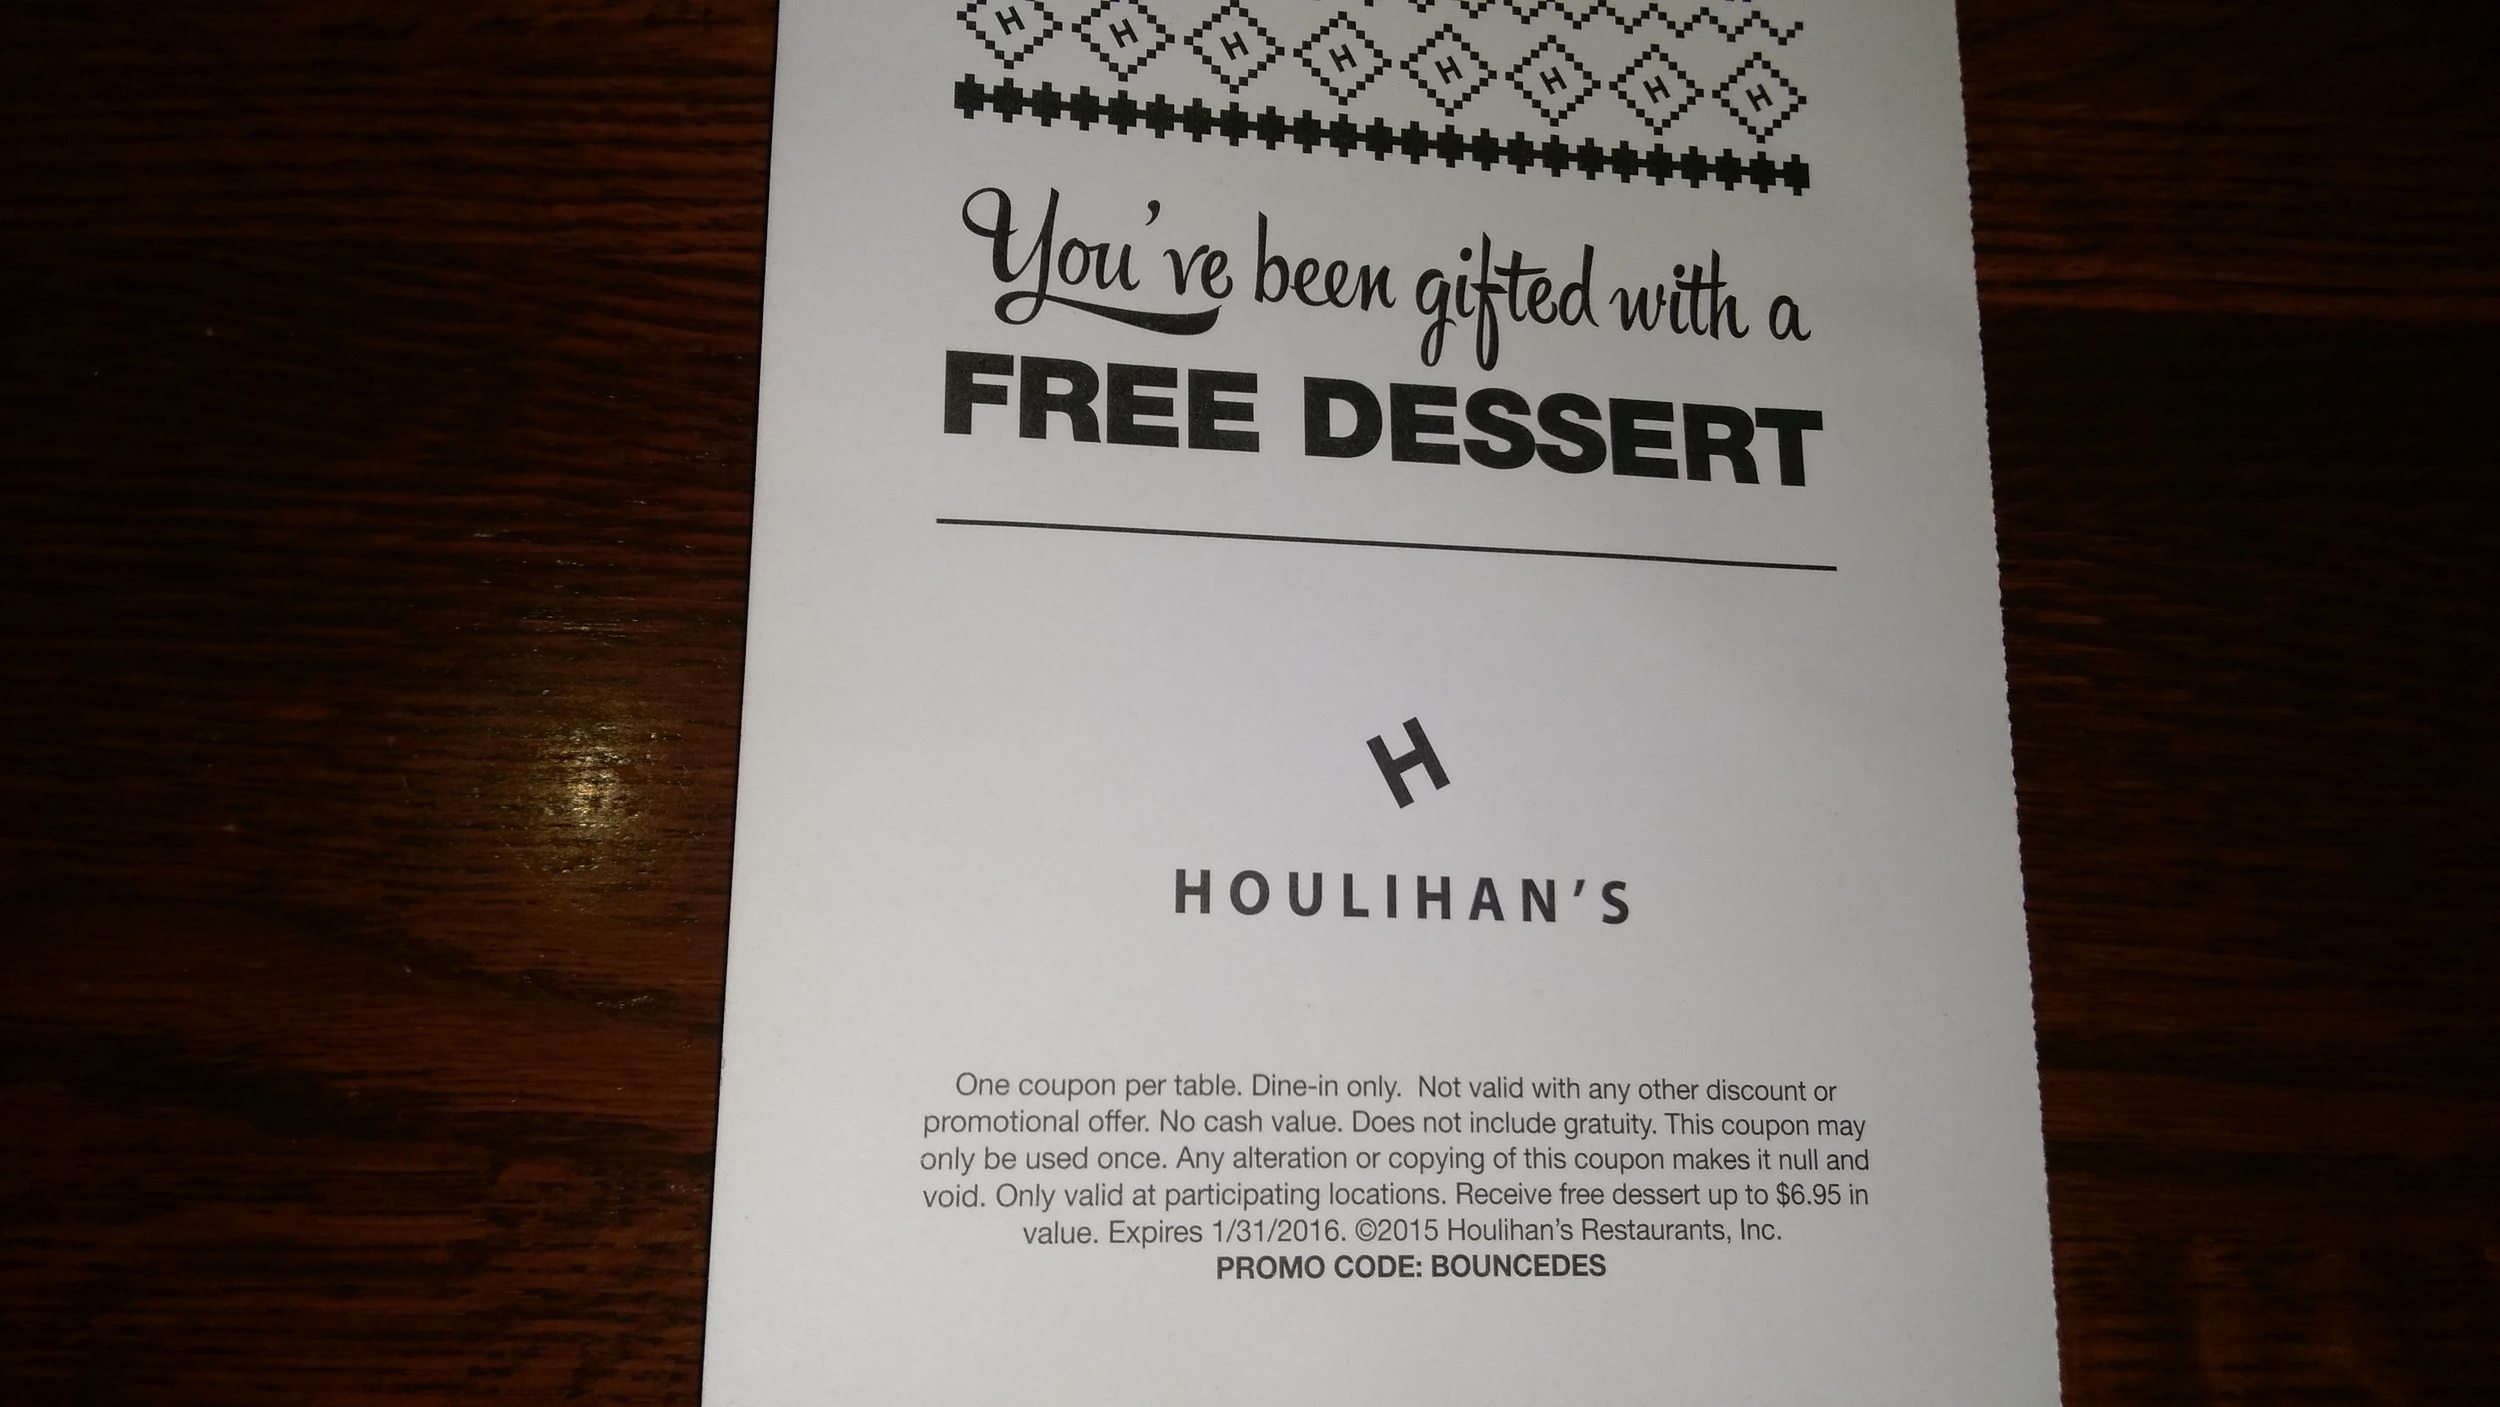 Houlihan's gave us a free dessert. Just what we needed before a beer tasting.